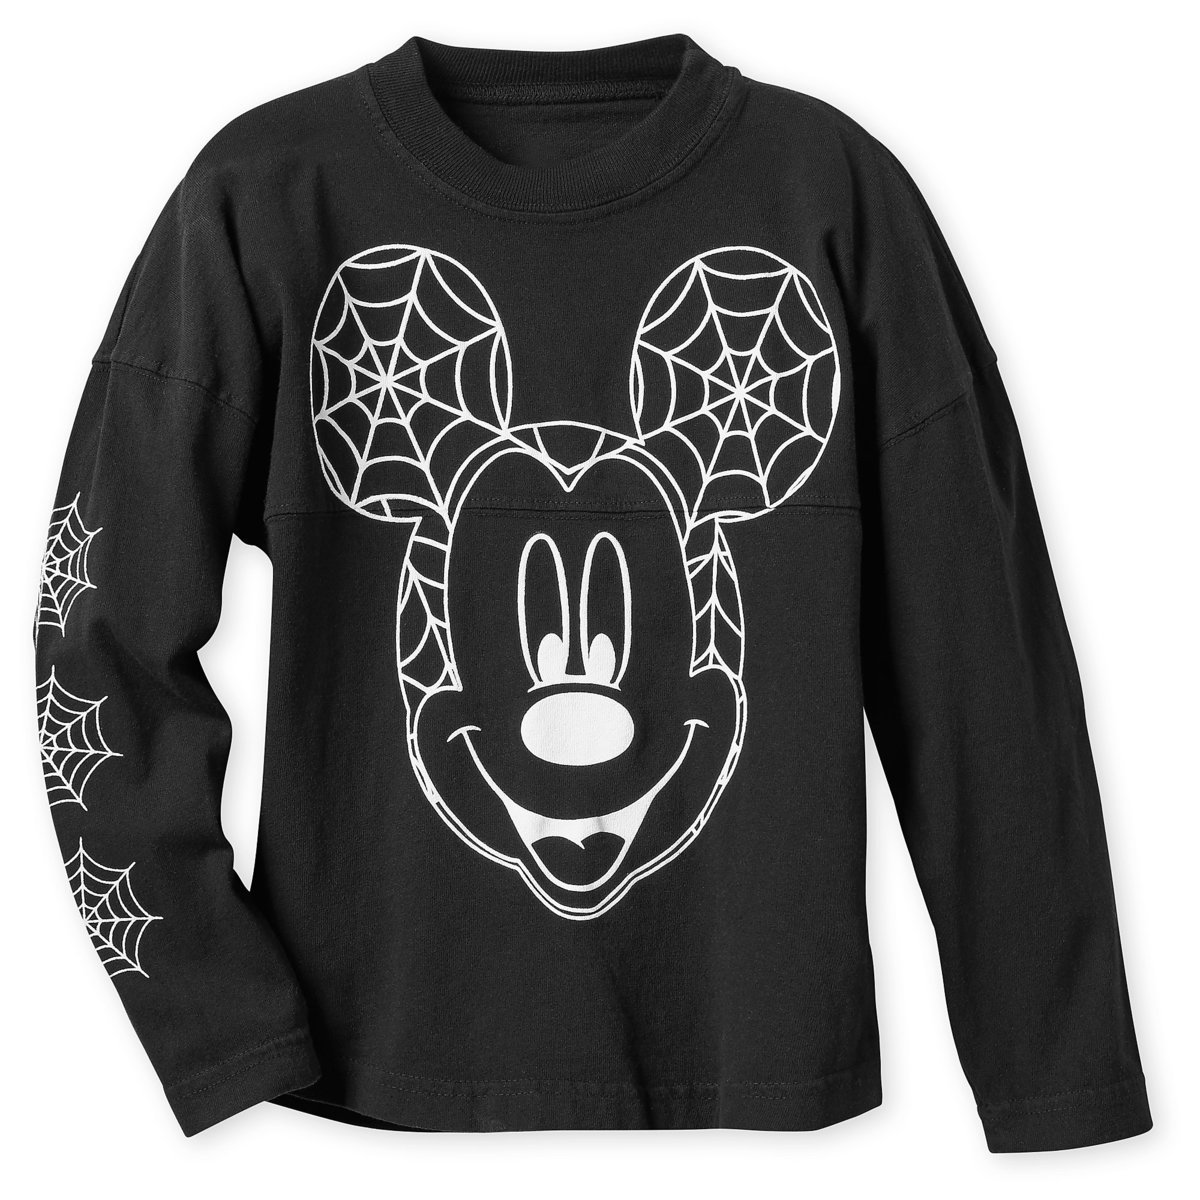 eb67b2d4 Product Image of Mickey Mouse Halloween Spirit Jersey for Kids # 1